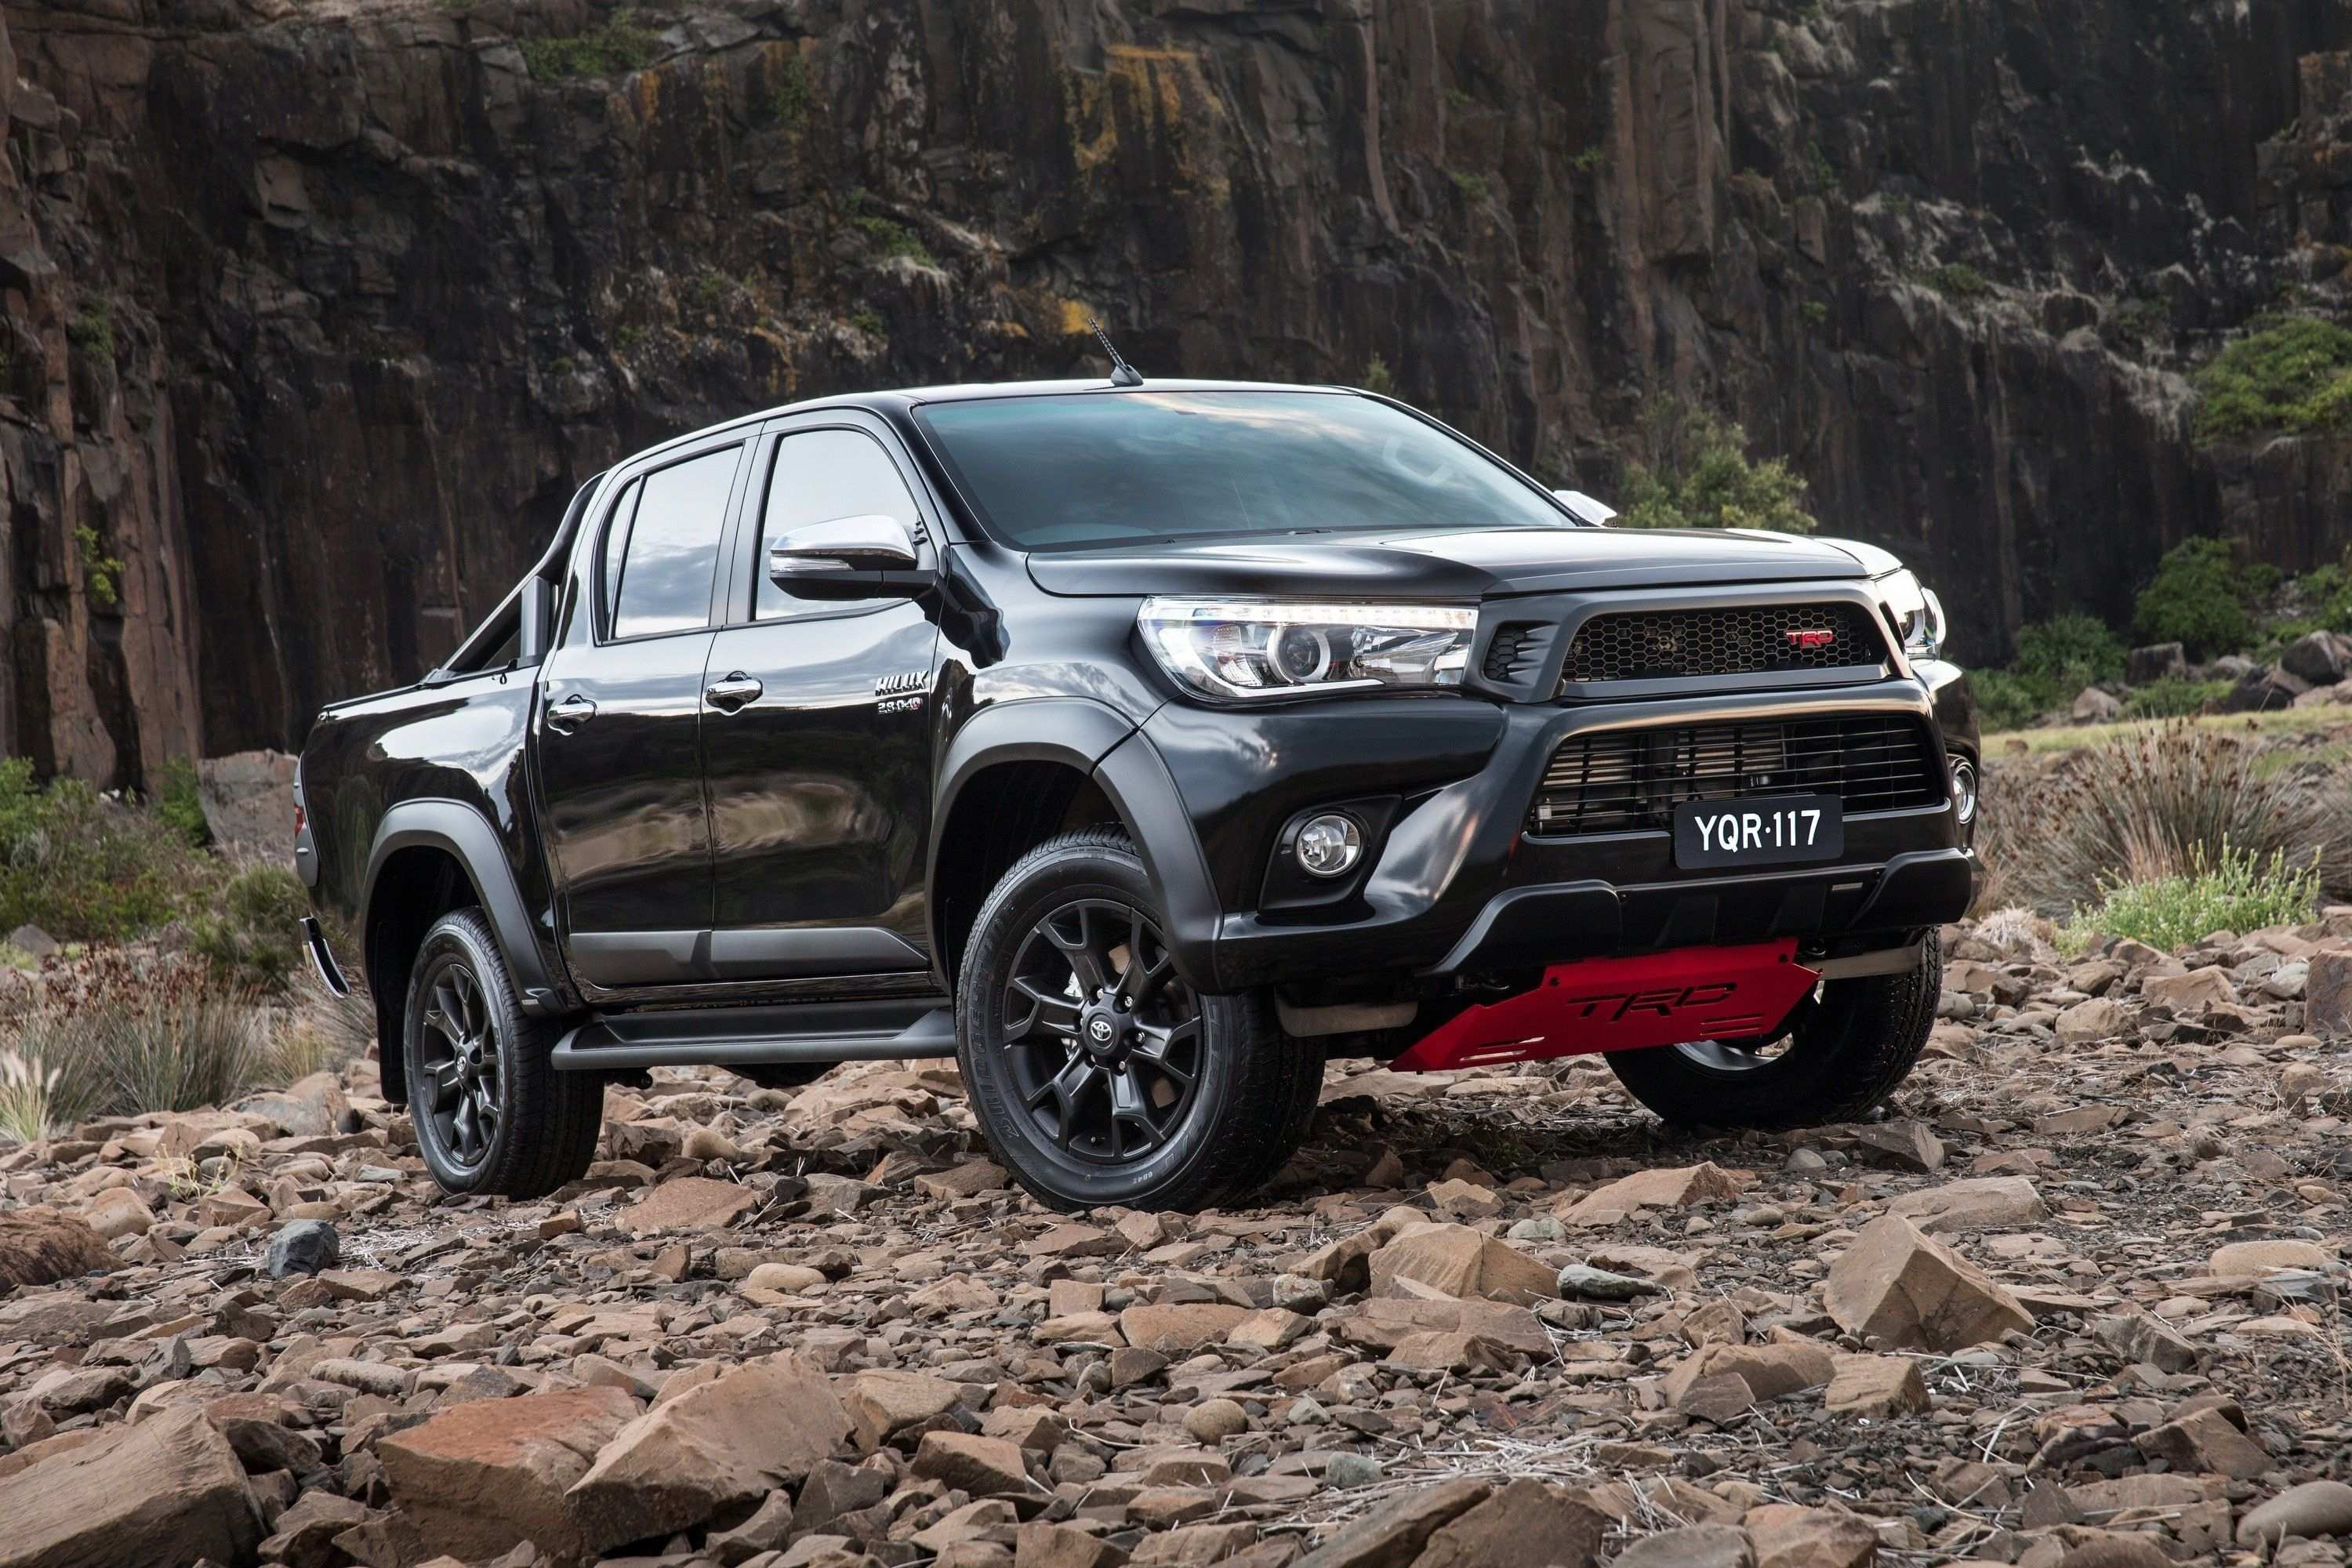 96 Concept of Best Toyota Hilux 2019 Facelift Concept History for Best Toyota Hilux 2019 Facelift Concept